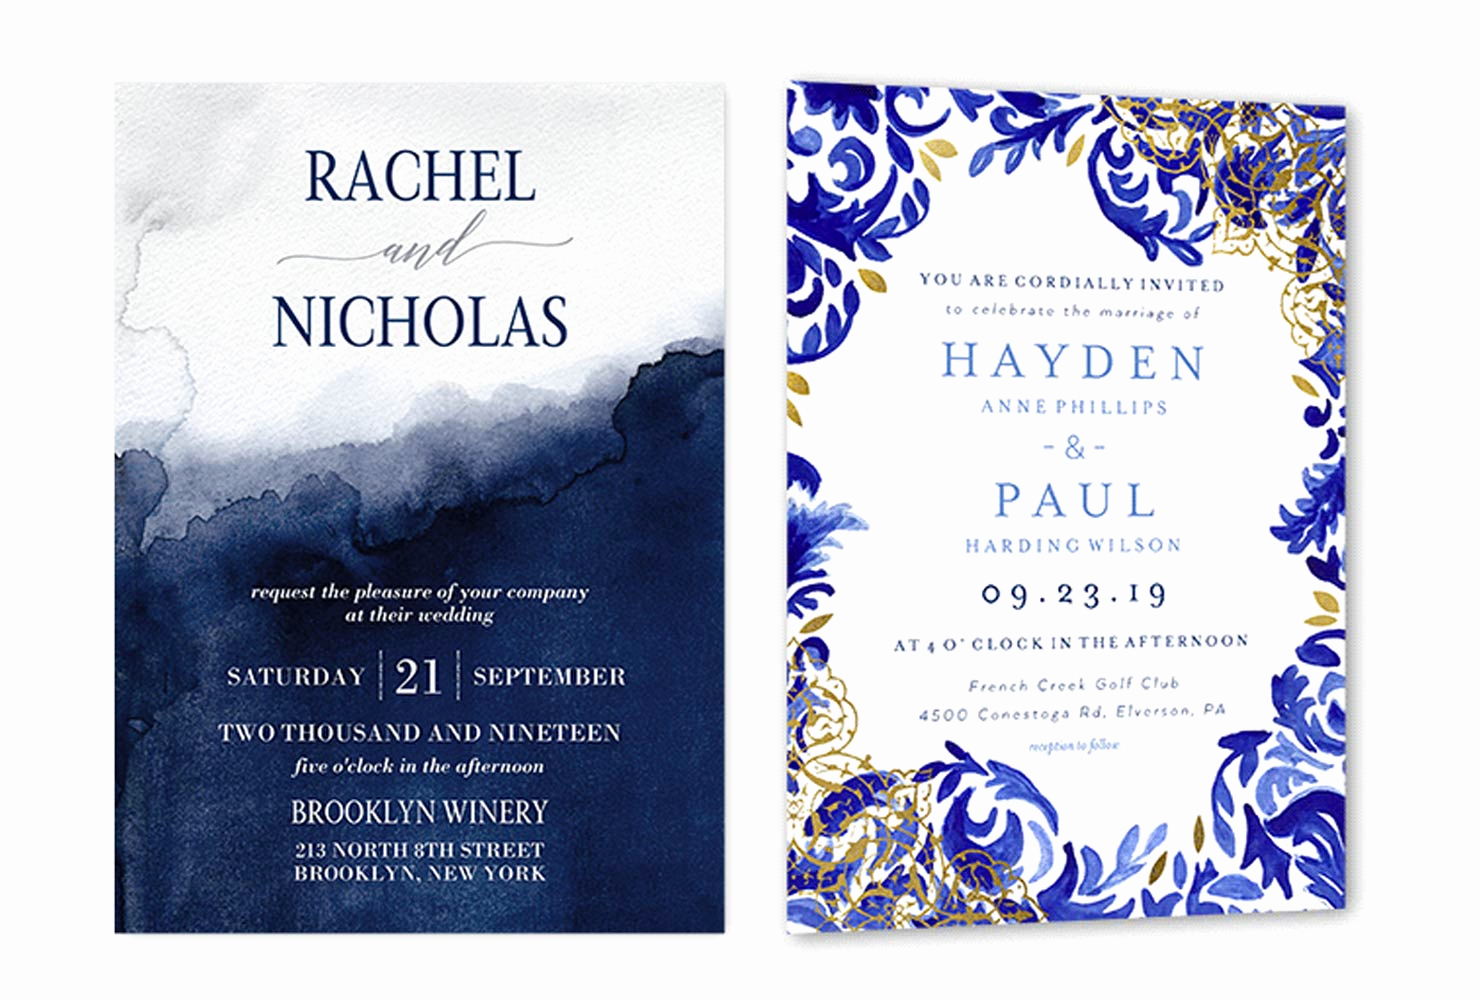 Couples Hosting Wedding Invitation Wording Best Of 35 Wedding Invitation Wording Examples 2019